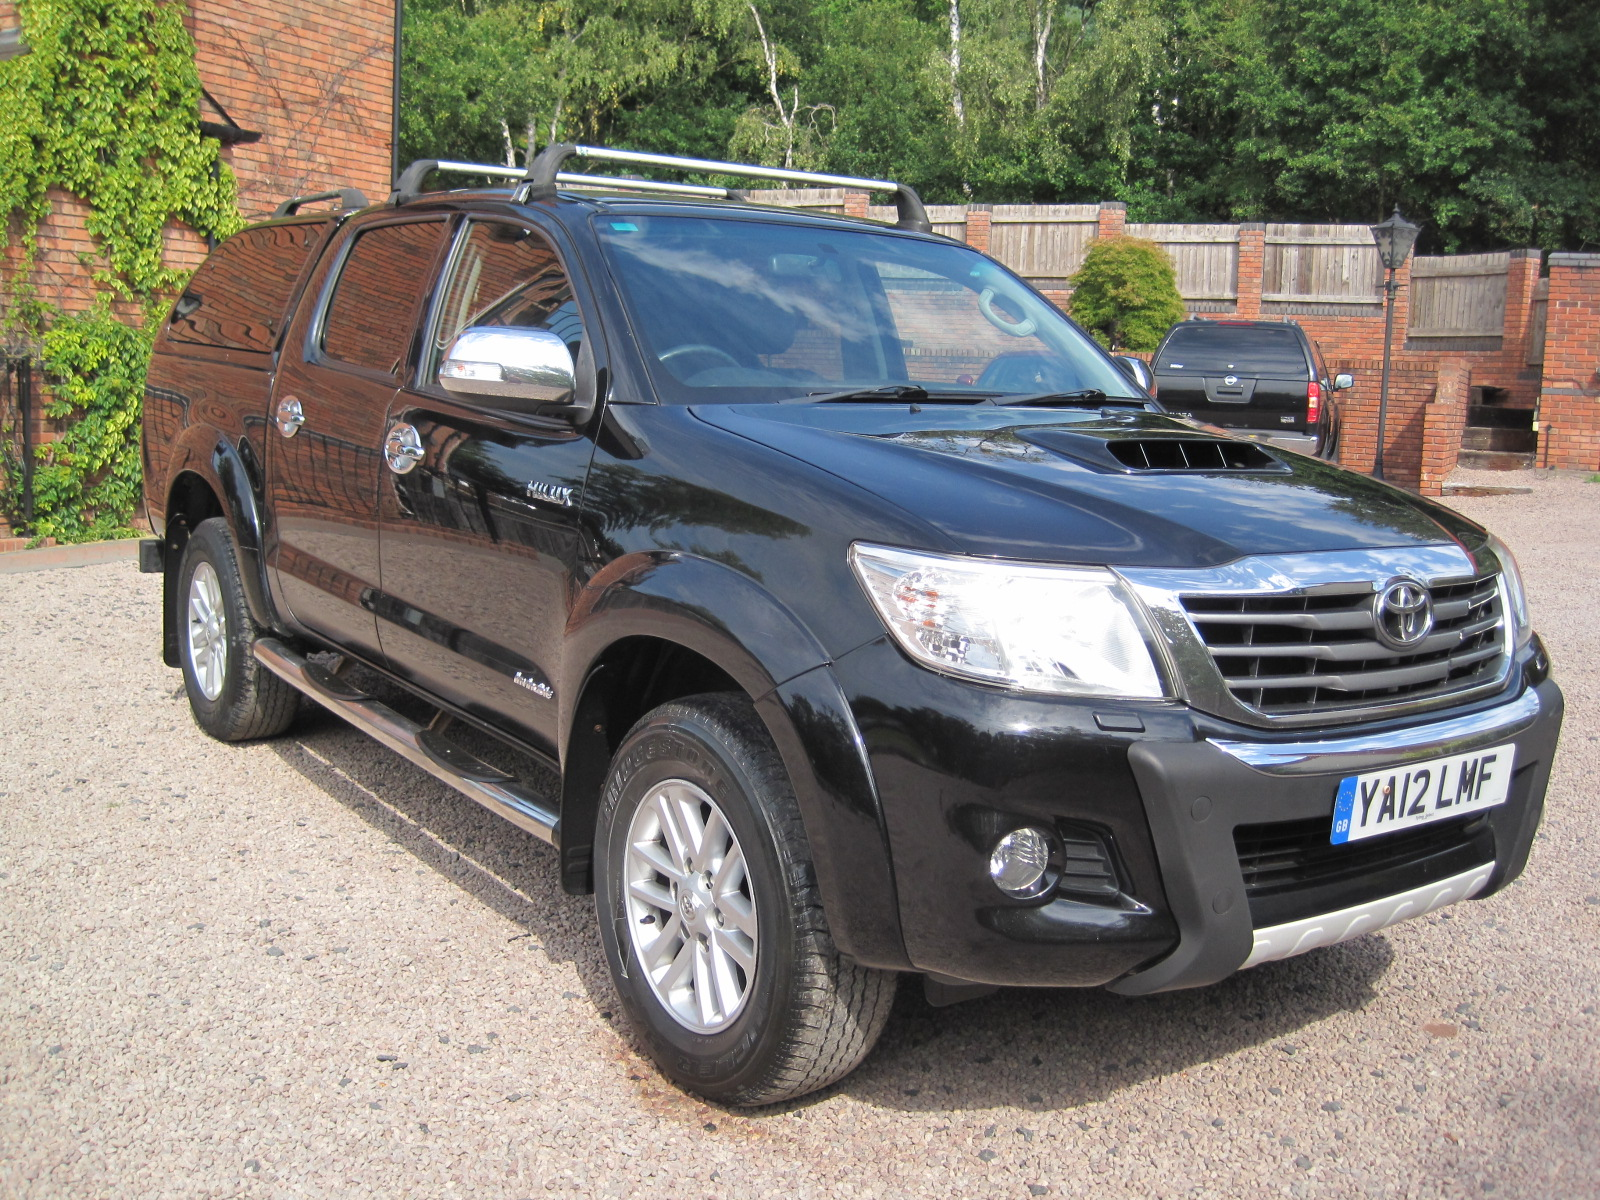 2012 12 Toyota Hilux 3.0 D-4D Invincible Crewcab Pickup 4dr VERY LOW MILES! ABSOLUTELY PRISTINE! NO VAT!